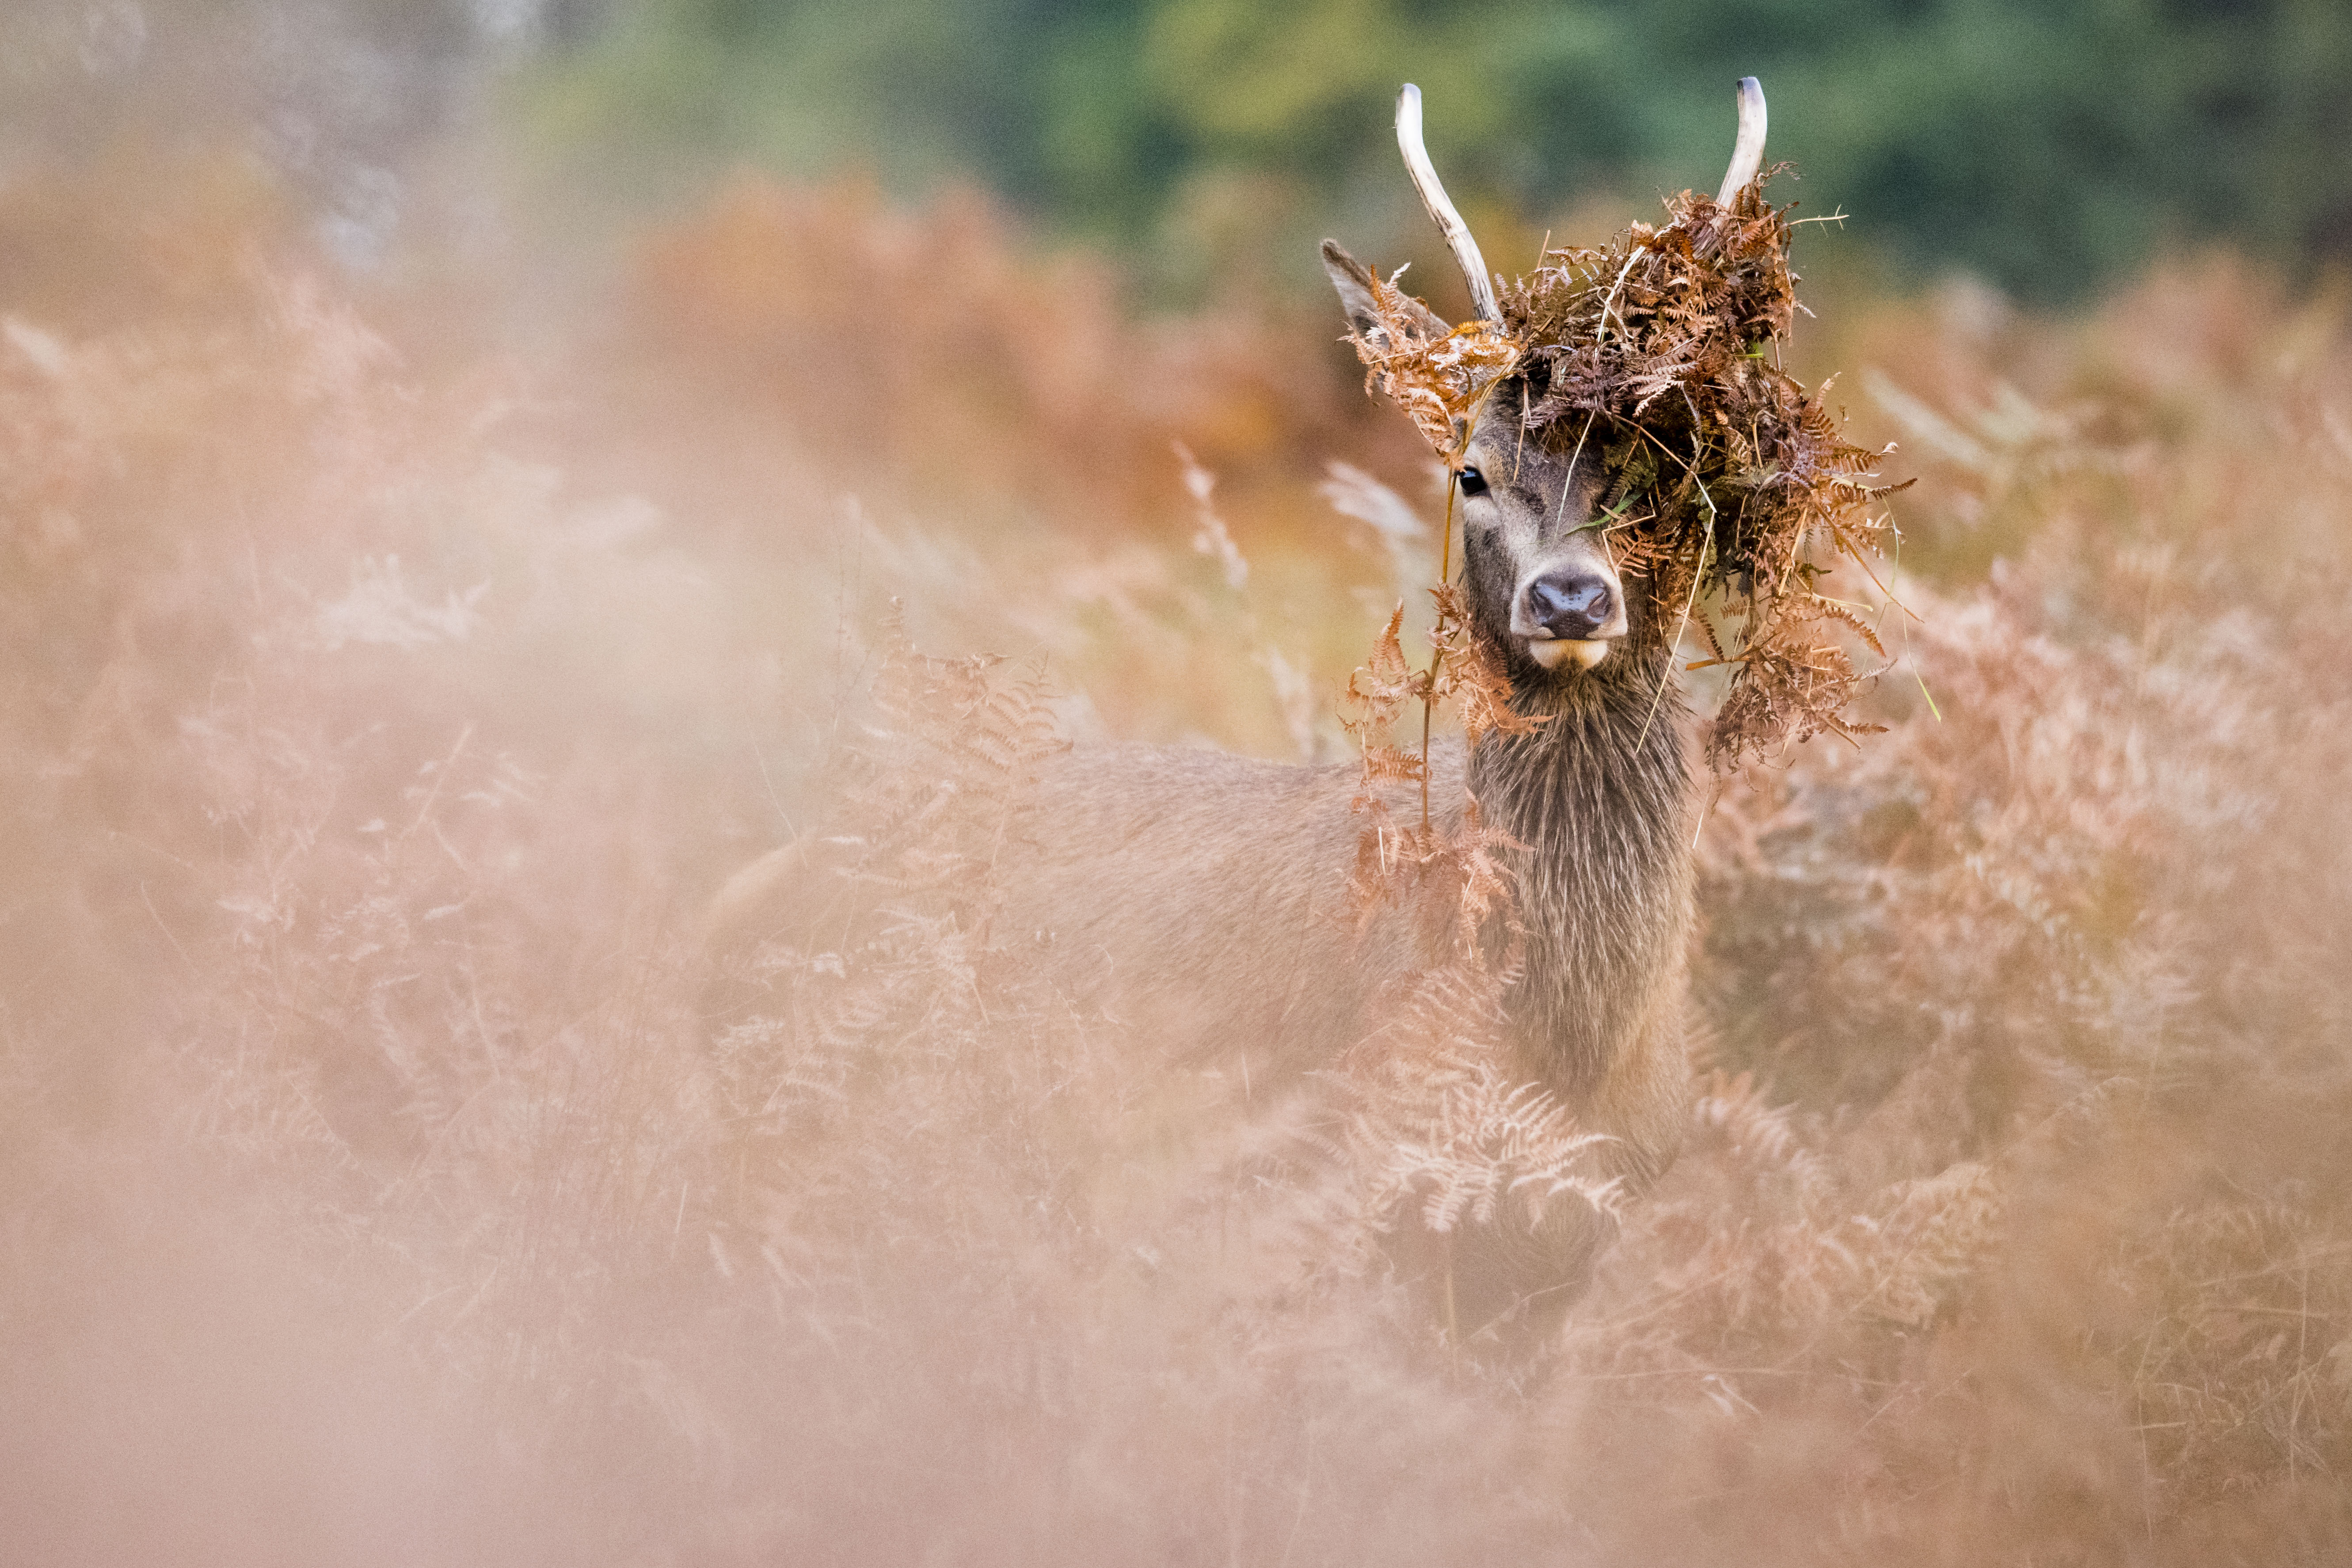 A stag in foliage